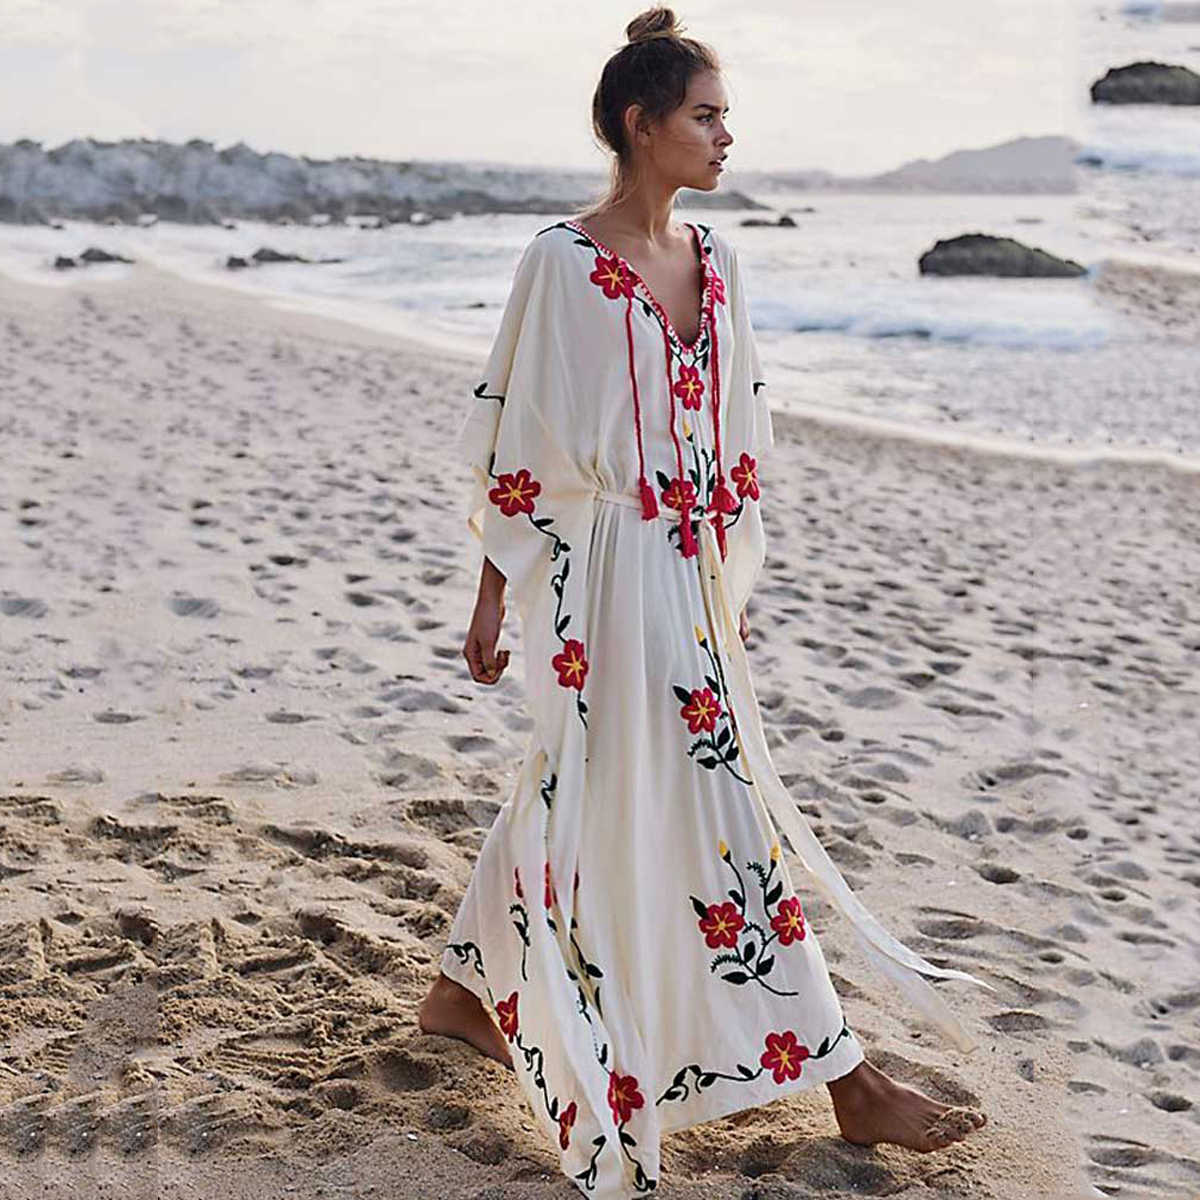 76d6842459f1f Detail Feedback Questions about Jastie Boho Floral Embroidered ...